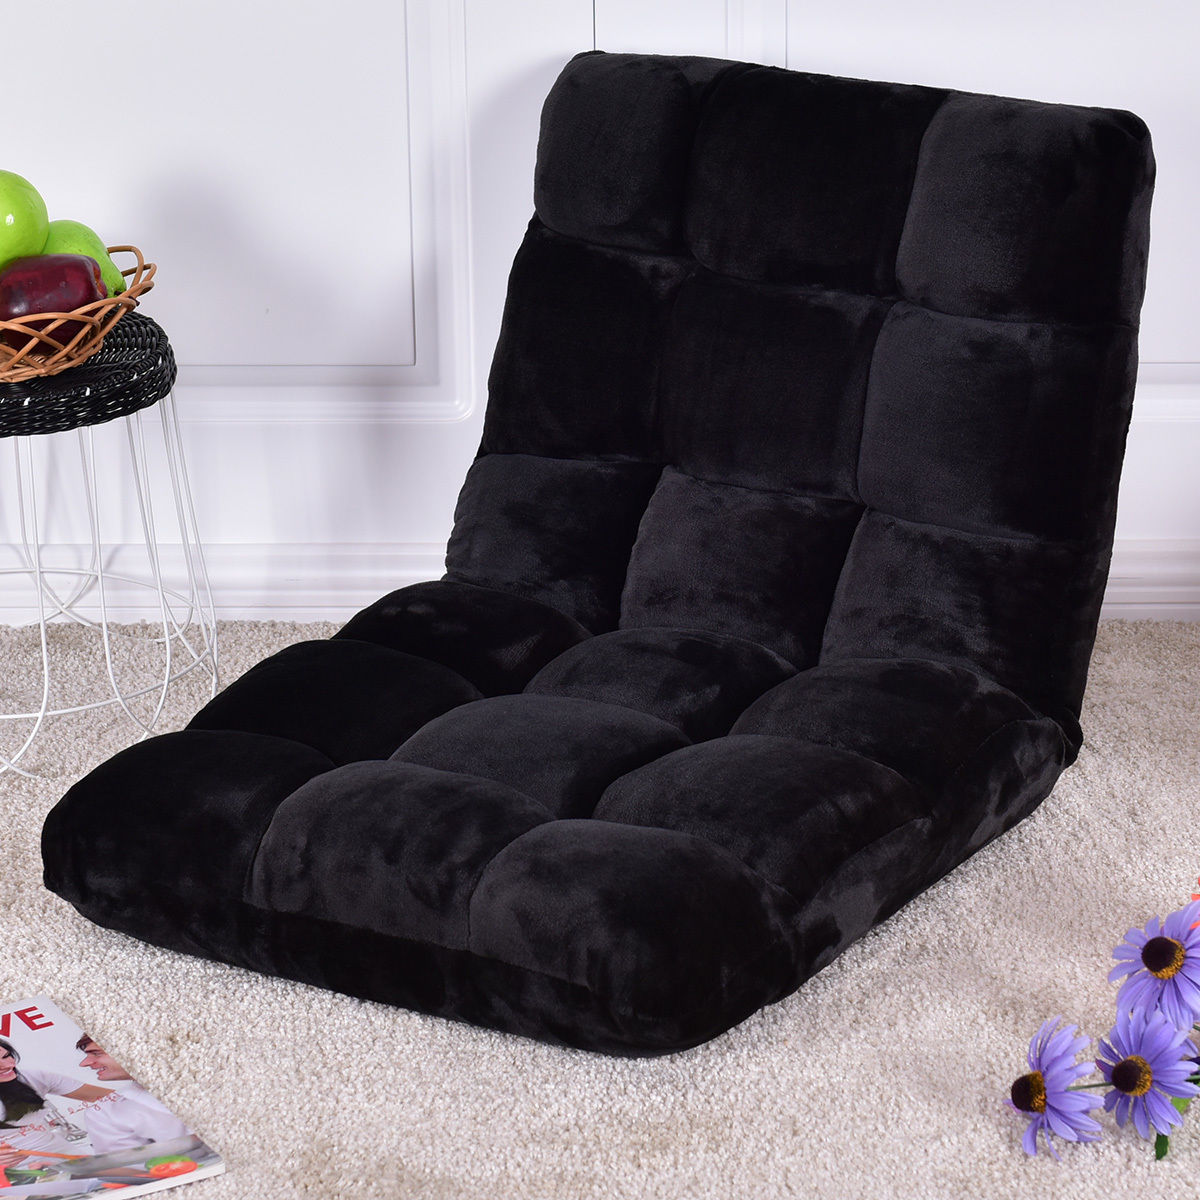 Giantex Floor Folding Sofa Chair Lounger 5 Positon Adjustable Sleeper Bed Couch Recliner Multiuse Flannel Floor Chair HW55460BK high quality folding sofa bed living room furniture lounge chair lazy sofa relaxing window corner sofa folding floor chair